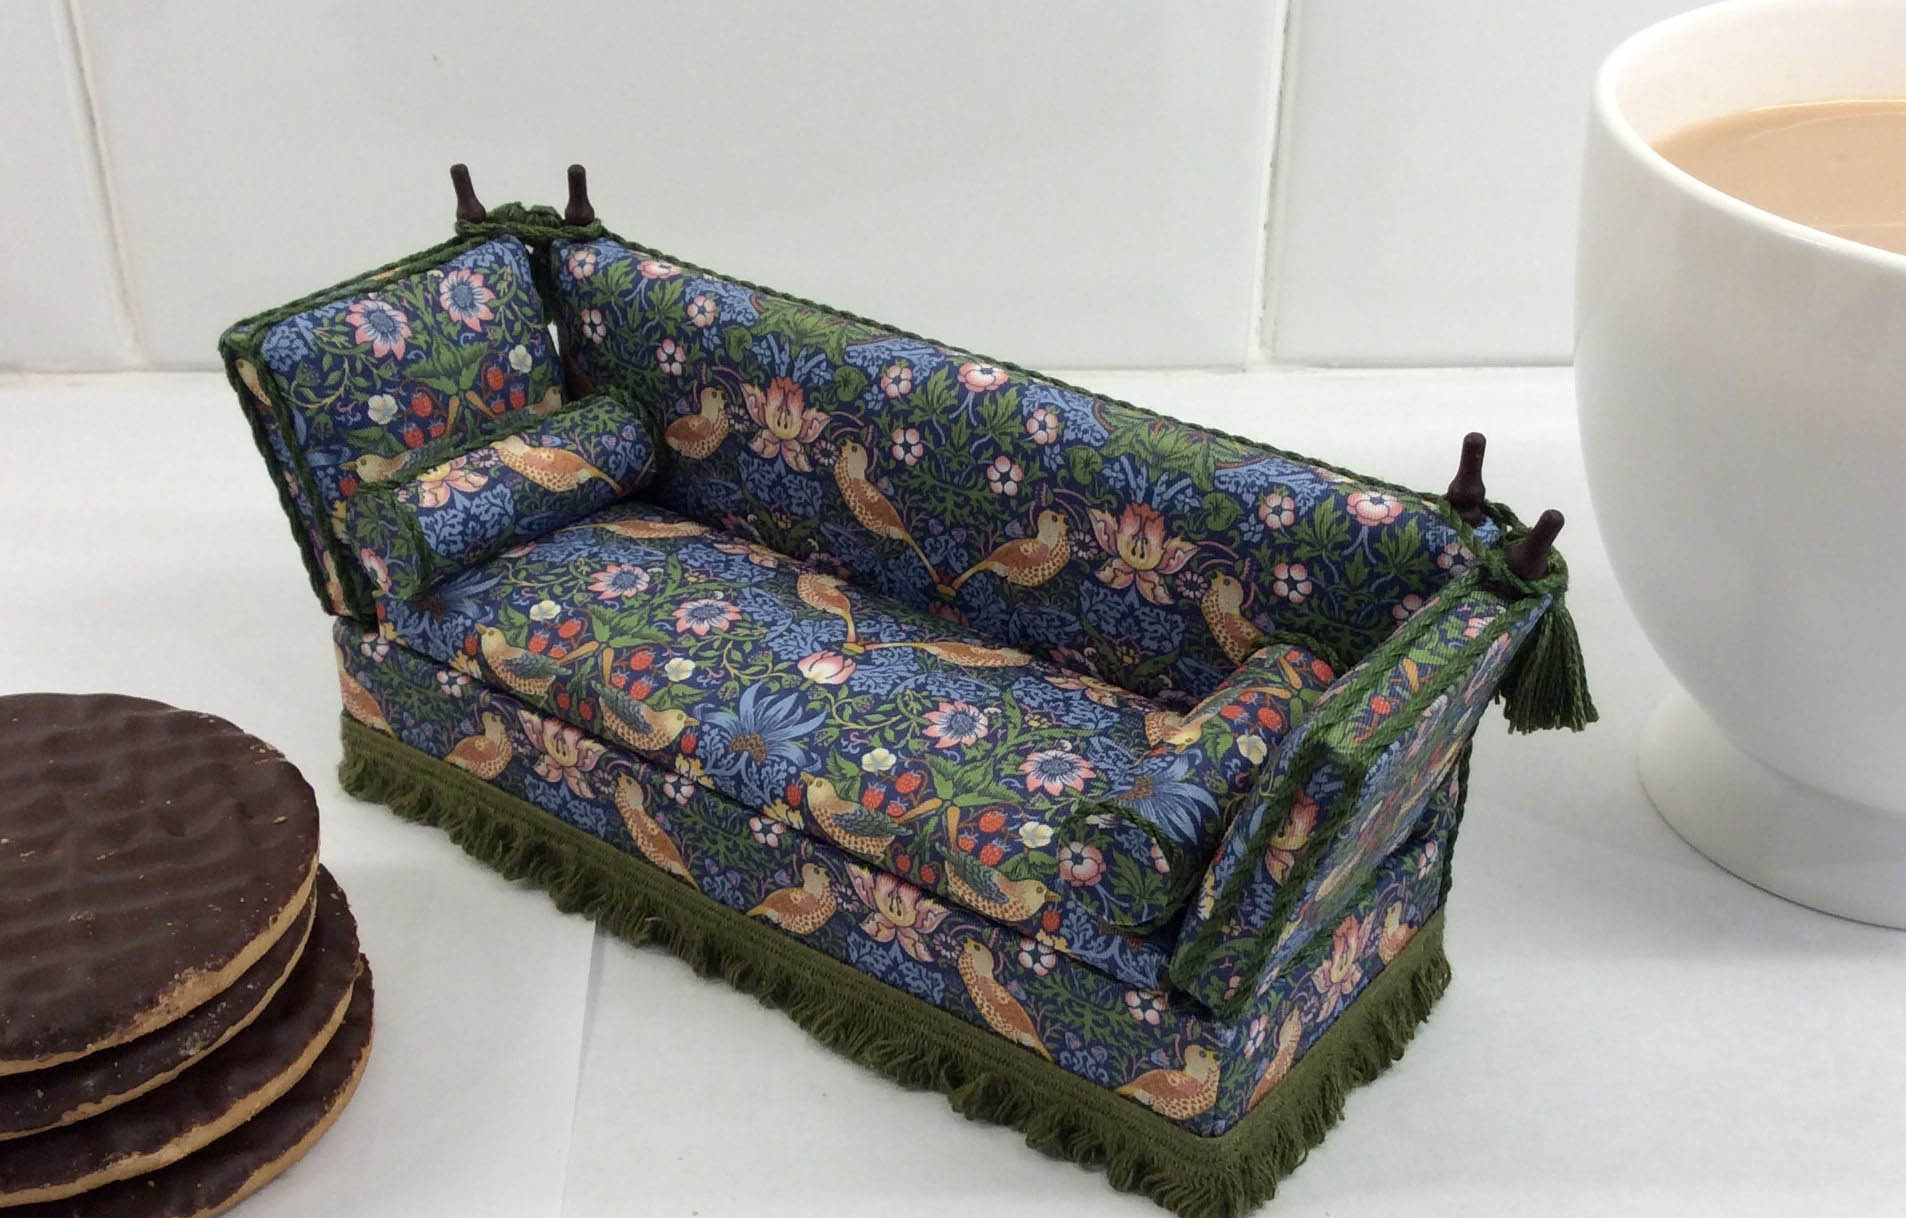 Arlettes Miniatures handcrafted miniature sofa